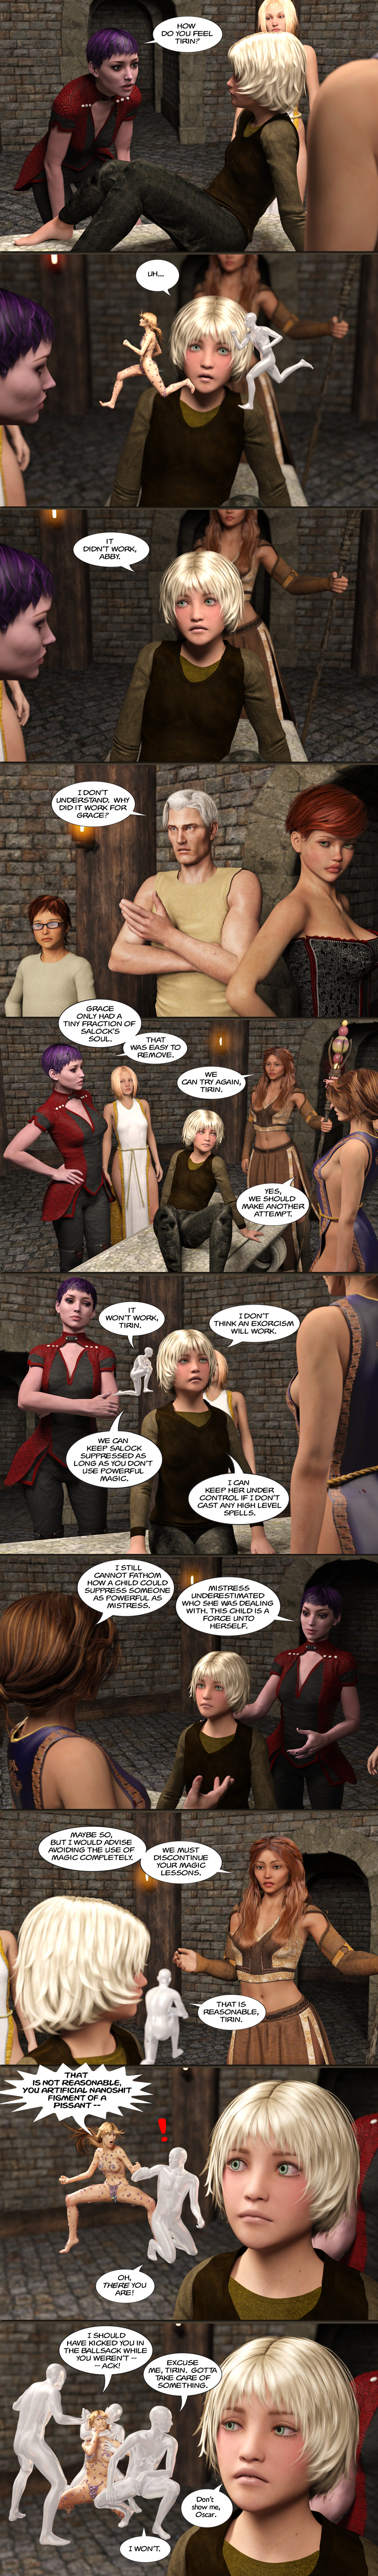 Chapter 17, page 34 – No more magic lessons, Tirin